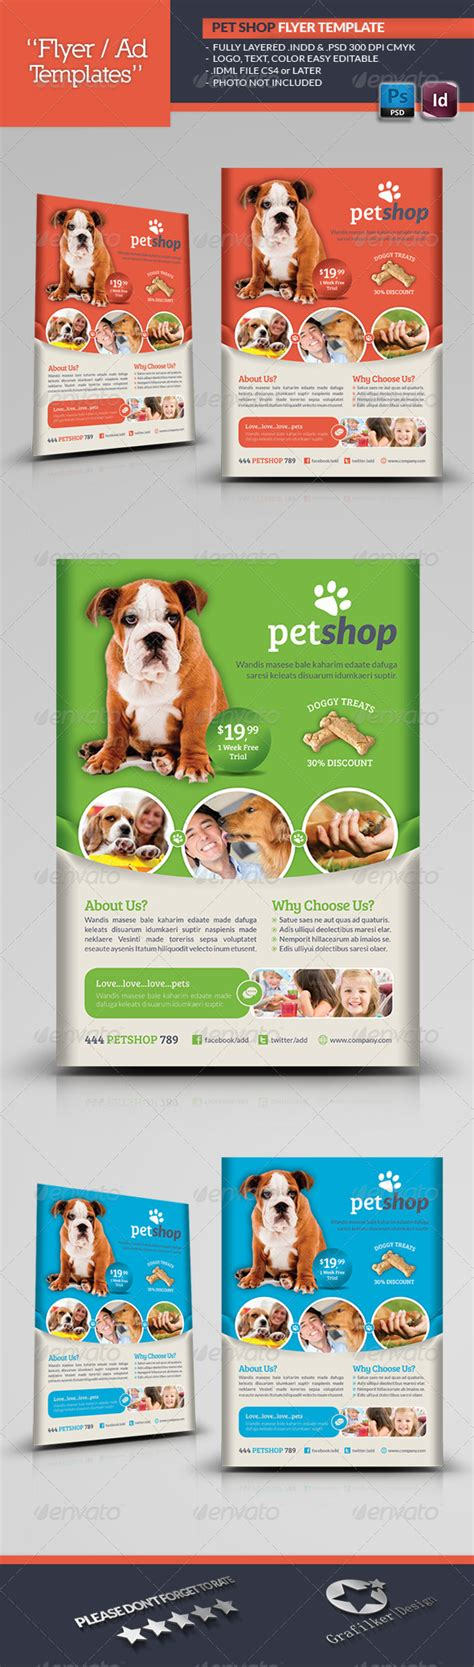 Pet Care Banners Psd Templates And On Animal Shelter Pet Adoption Print Template Pack Fundraisi Pet Adoption Flyer Template